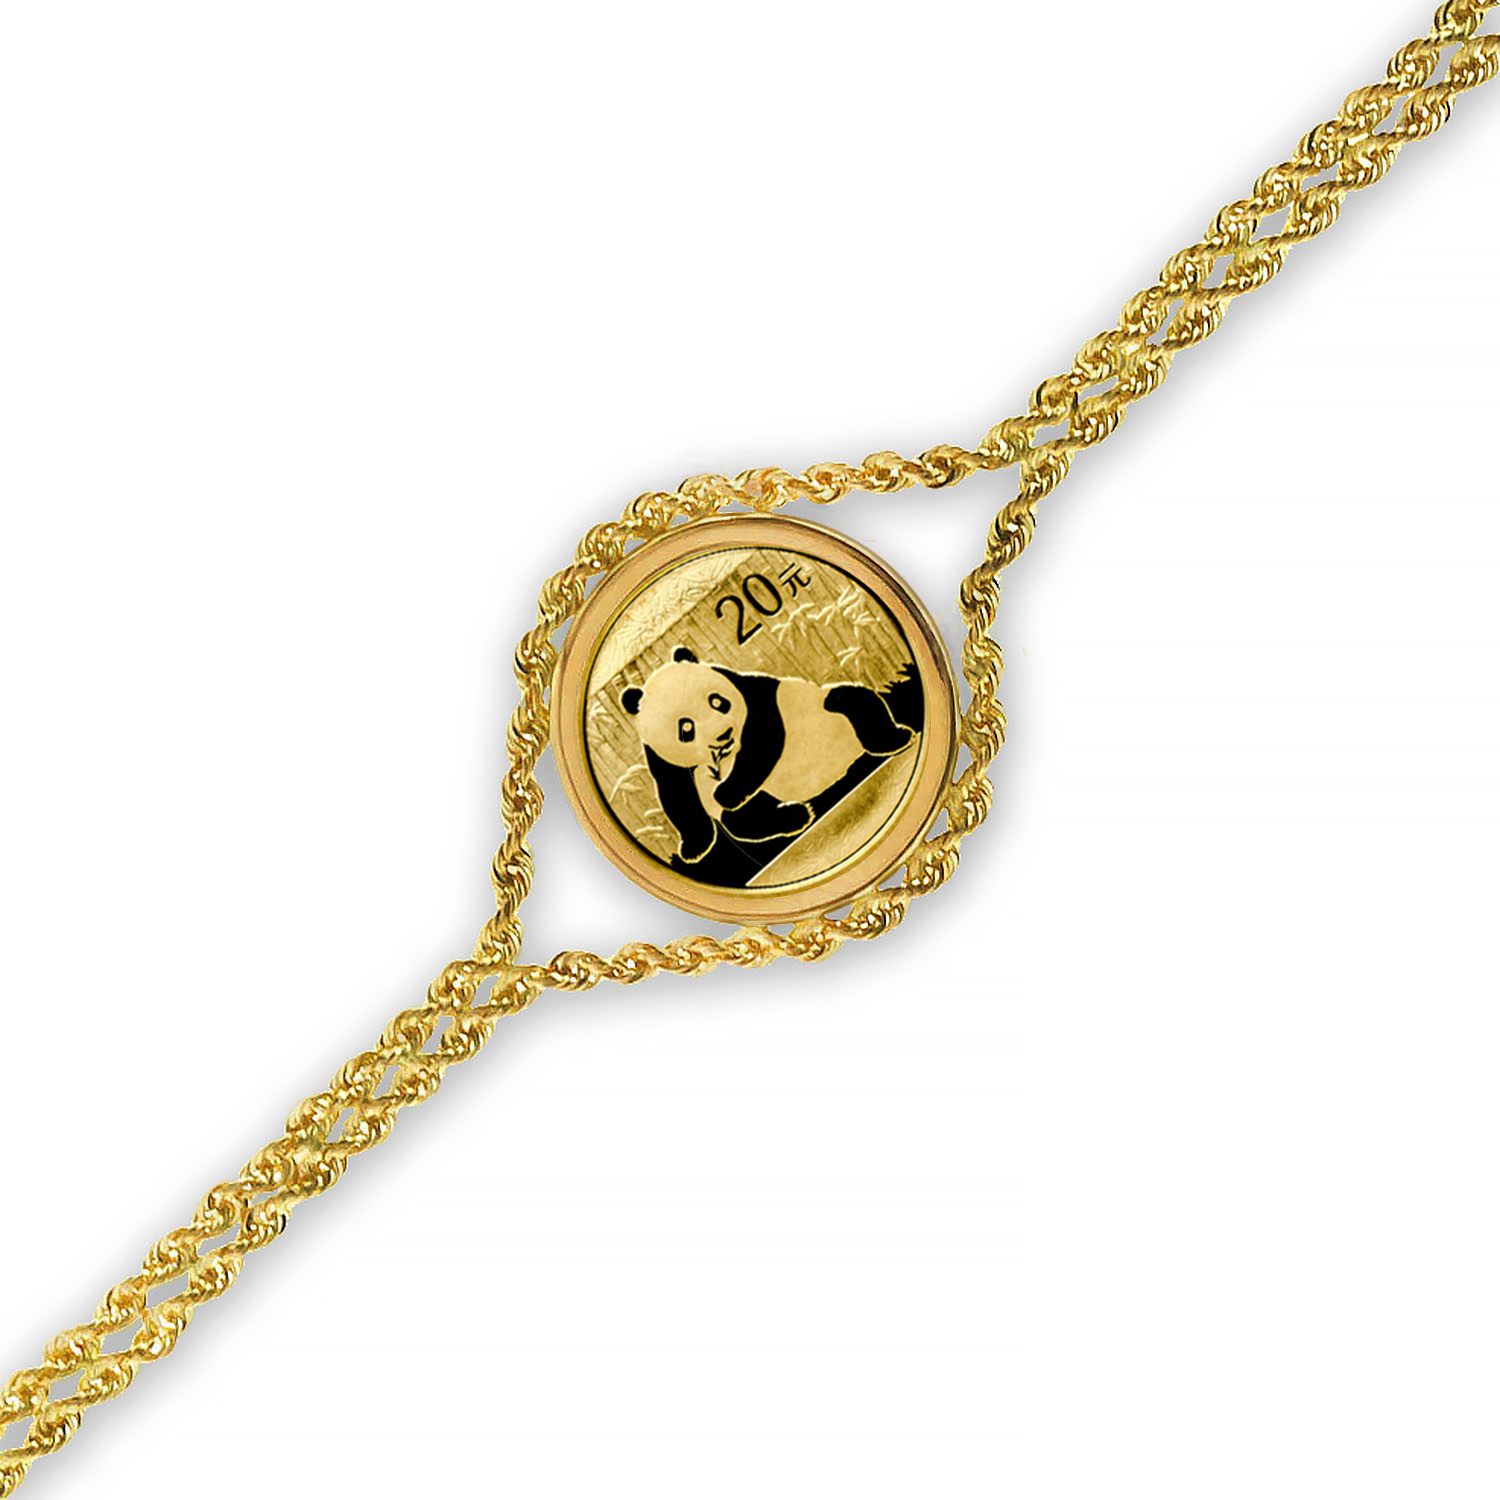 2015 1/20 oz Gold Panda Bracelet (Polished Rope)